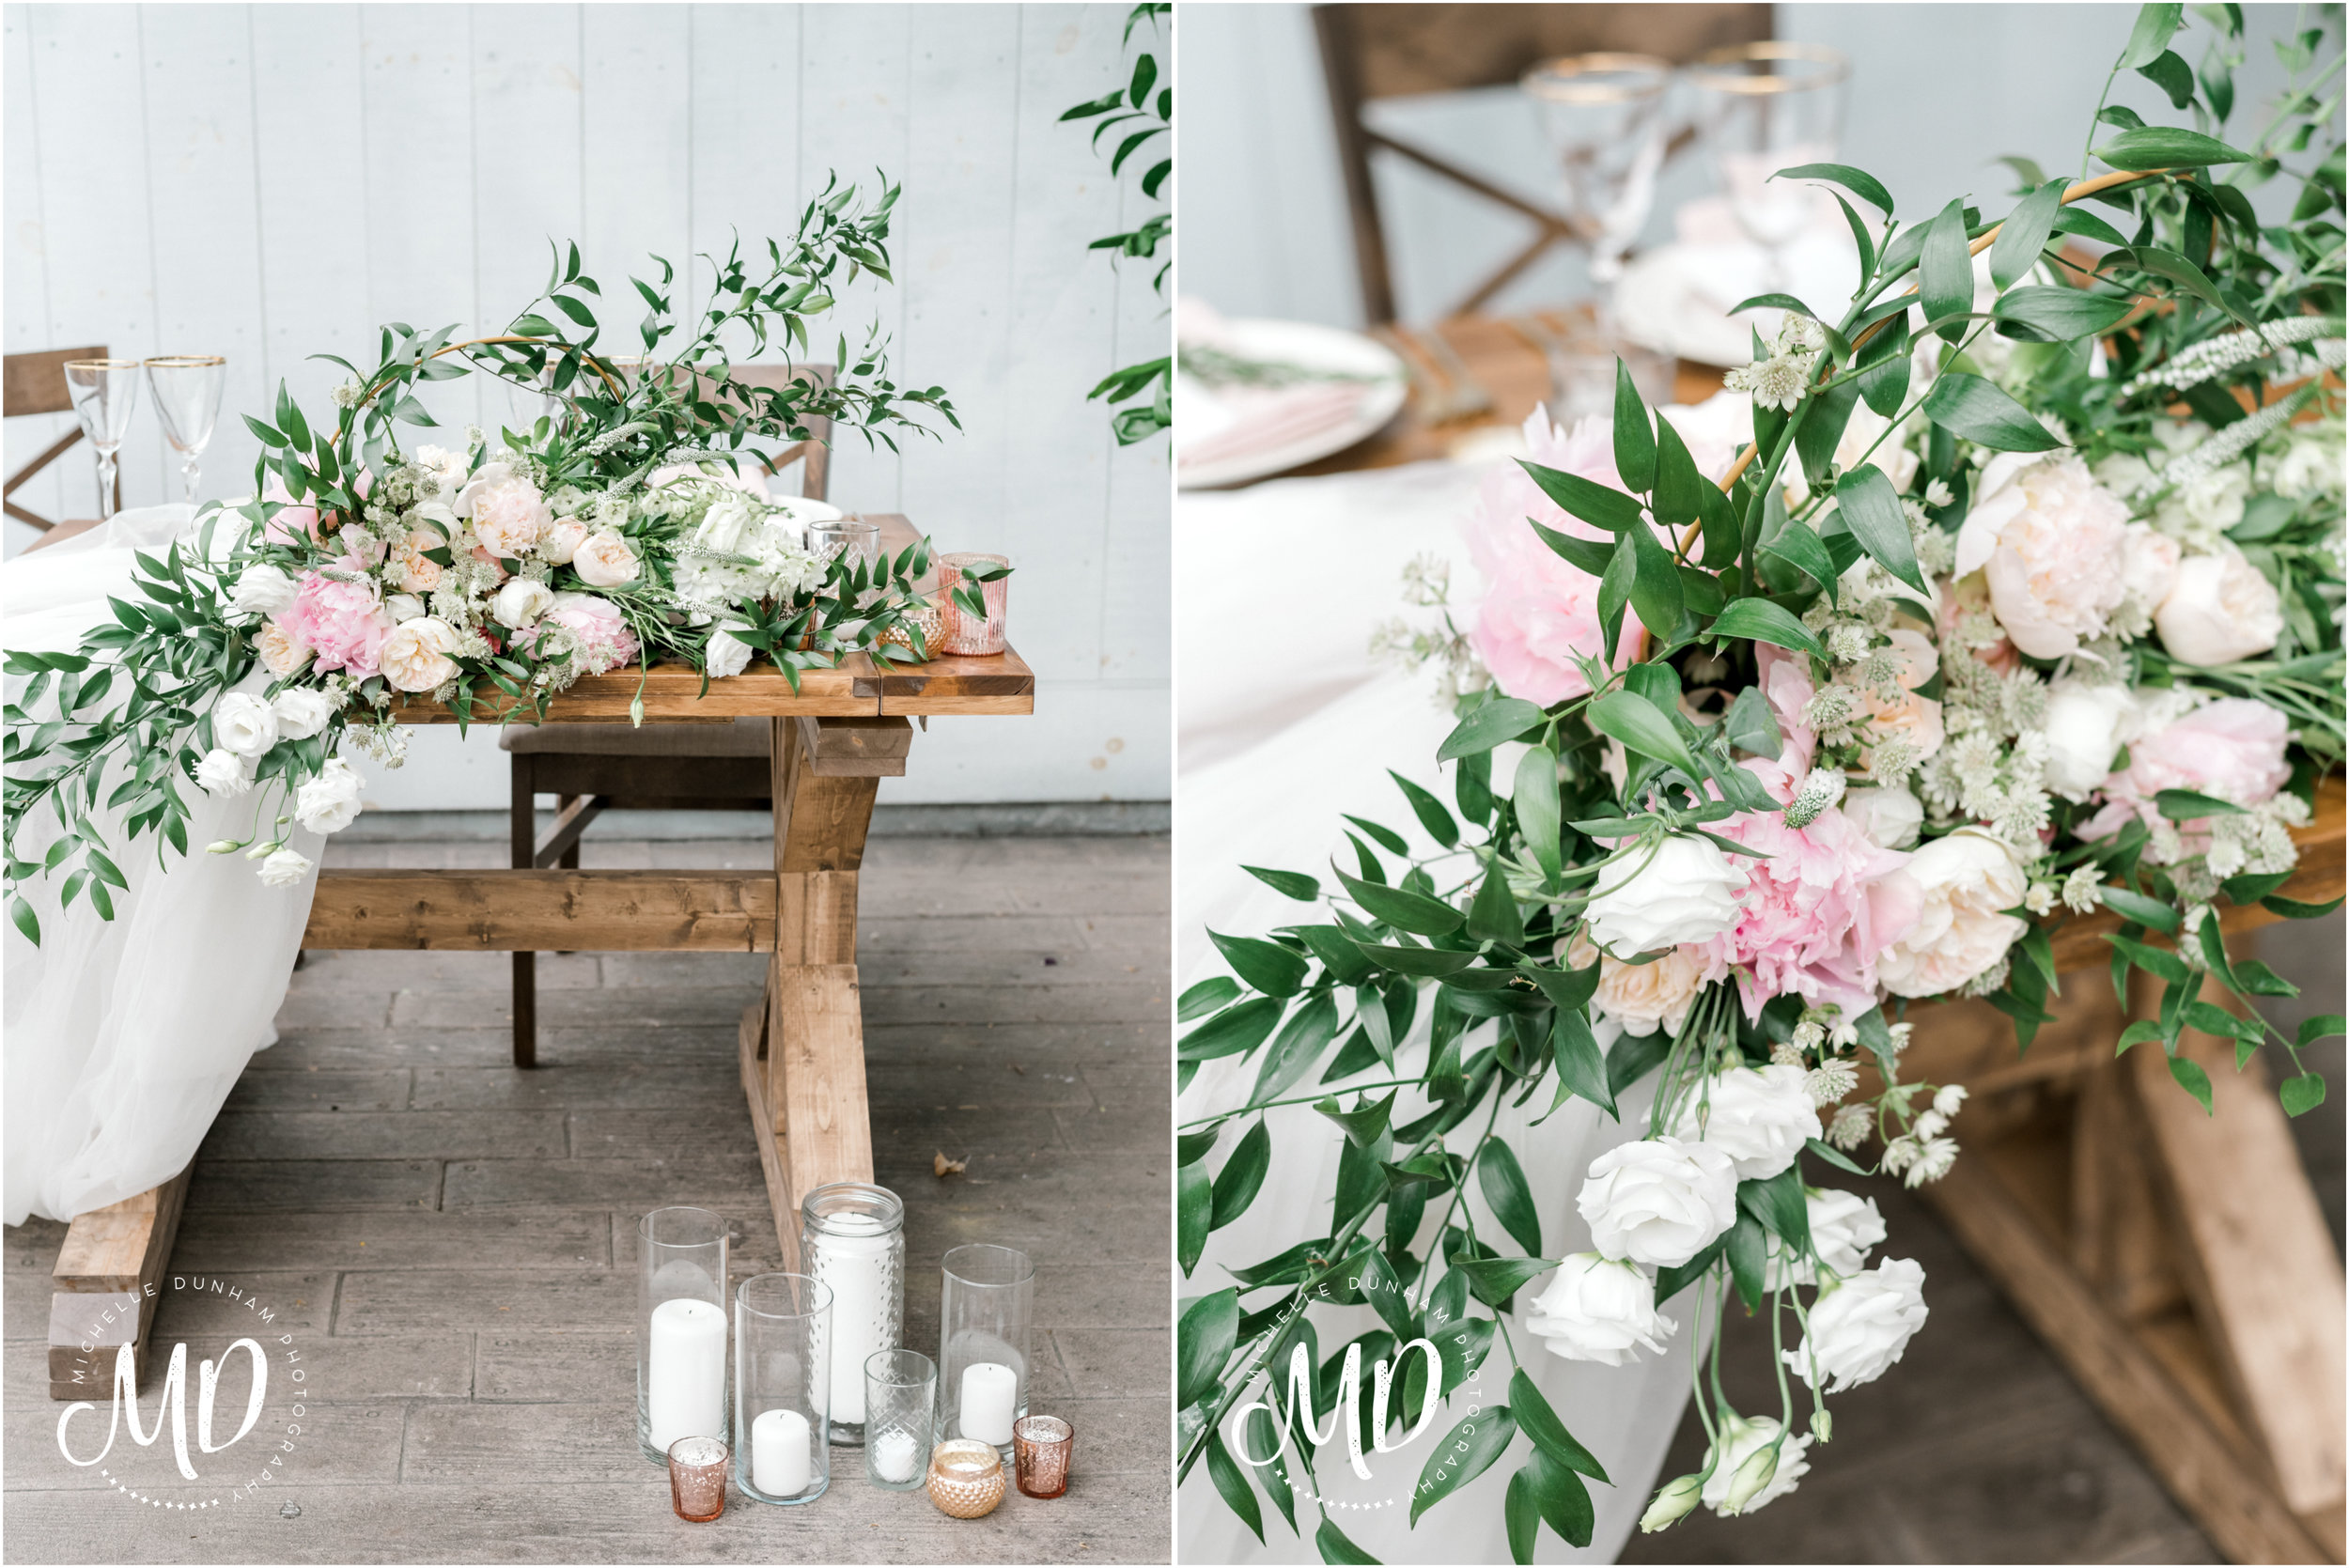 briar_barn_wedding_sweetheart_table_michelle_dunham_photography.jpg